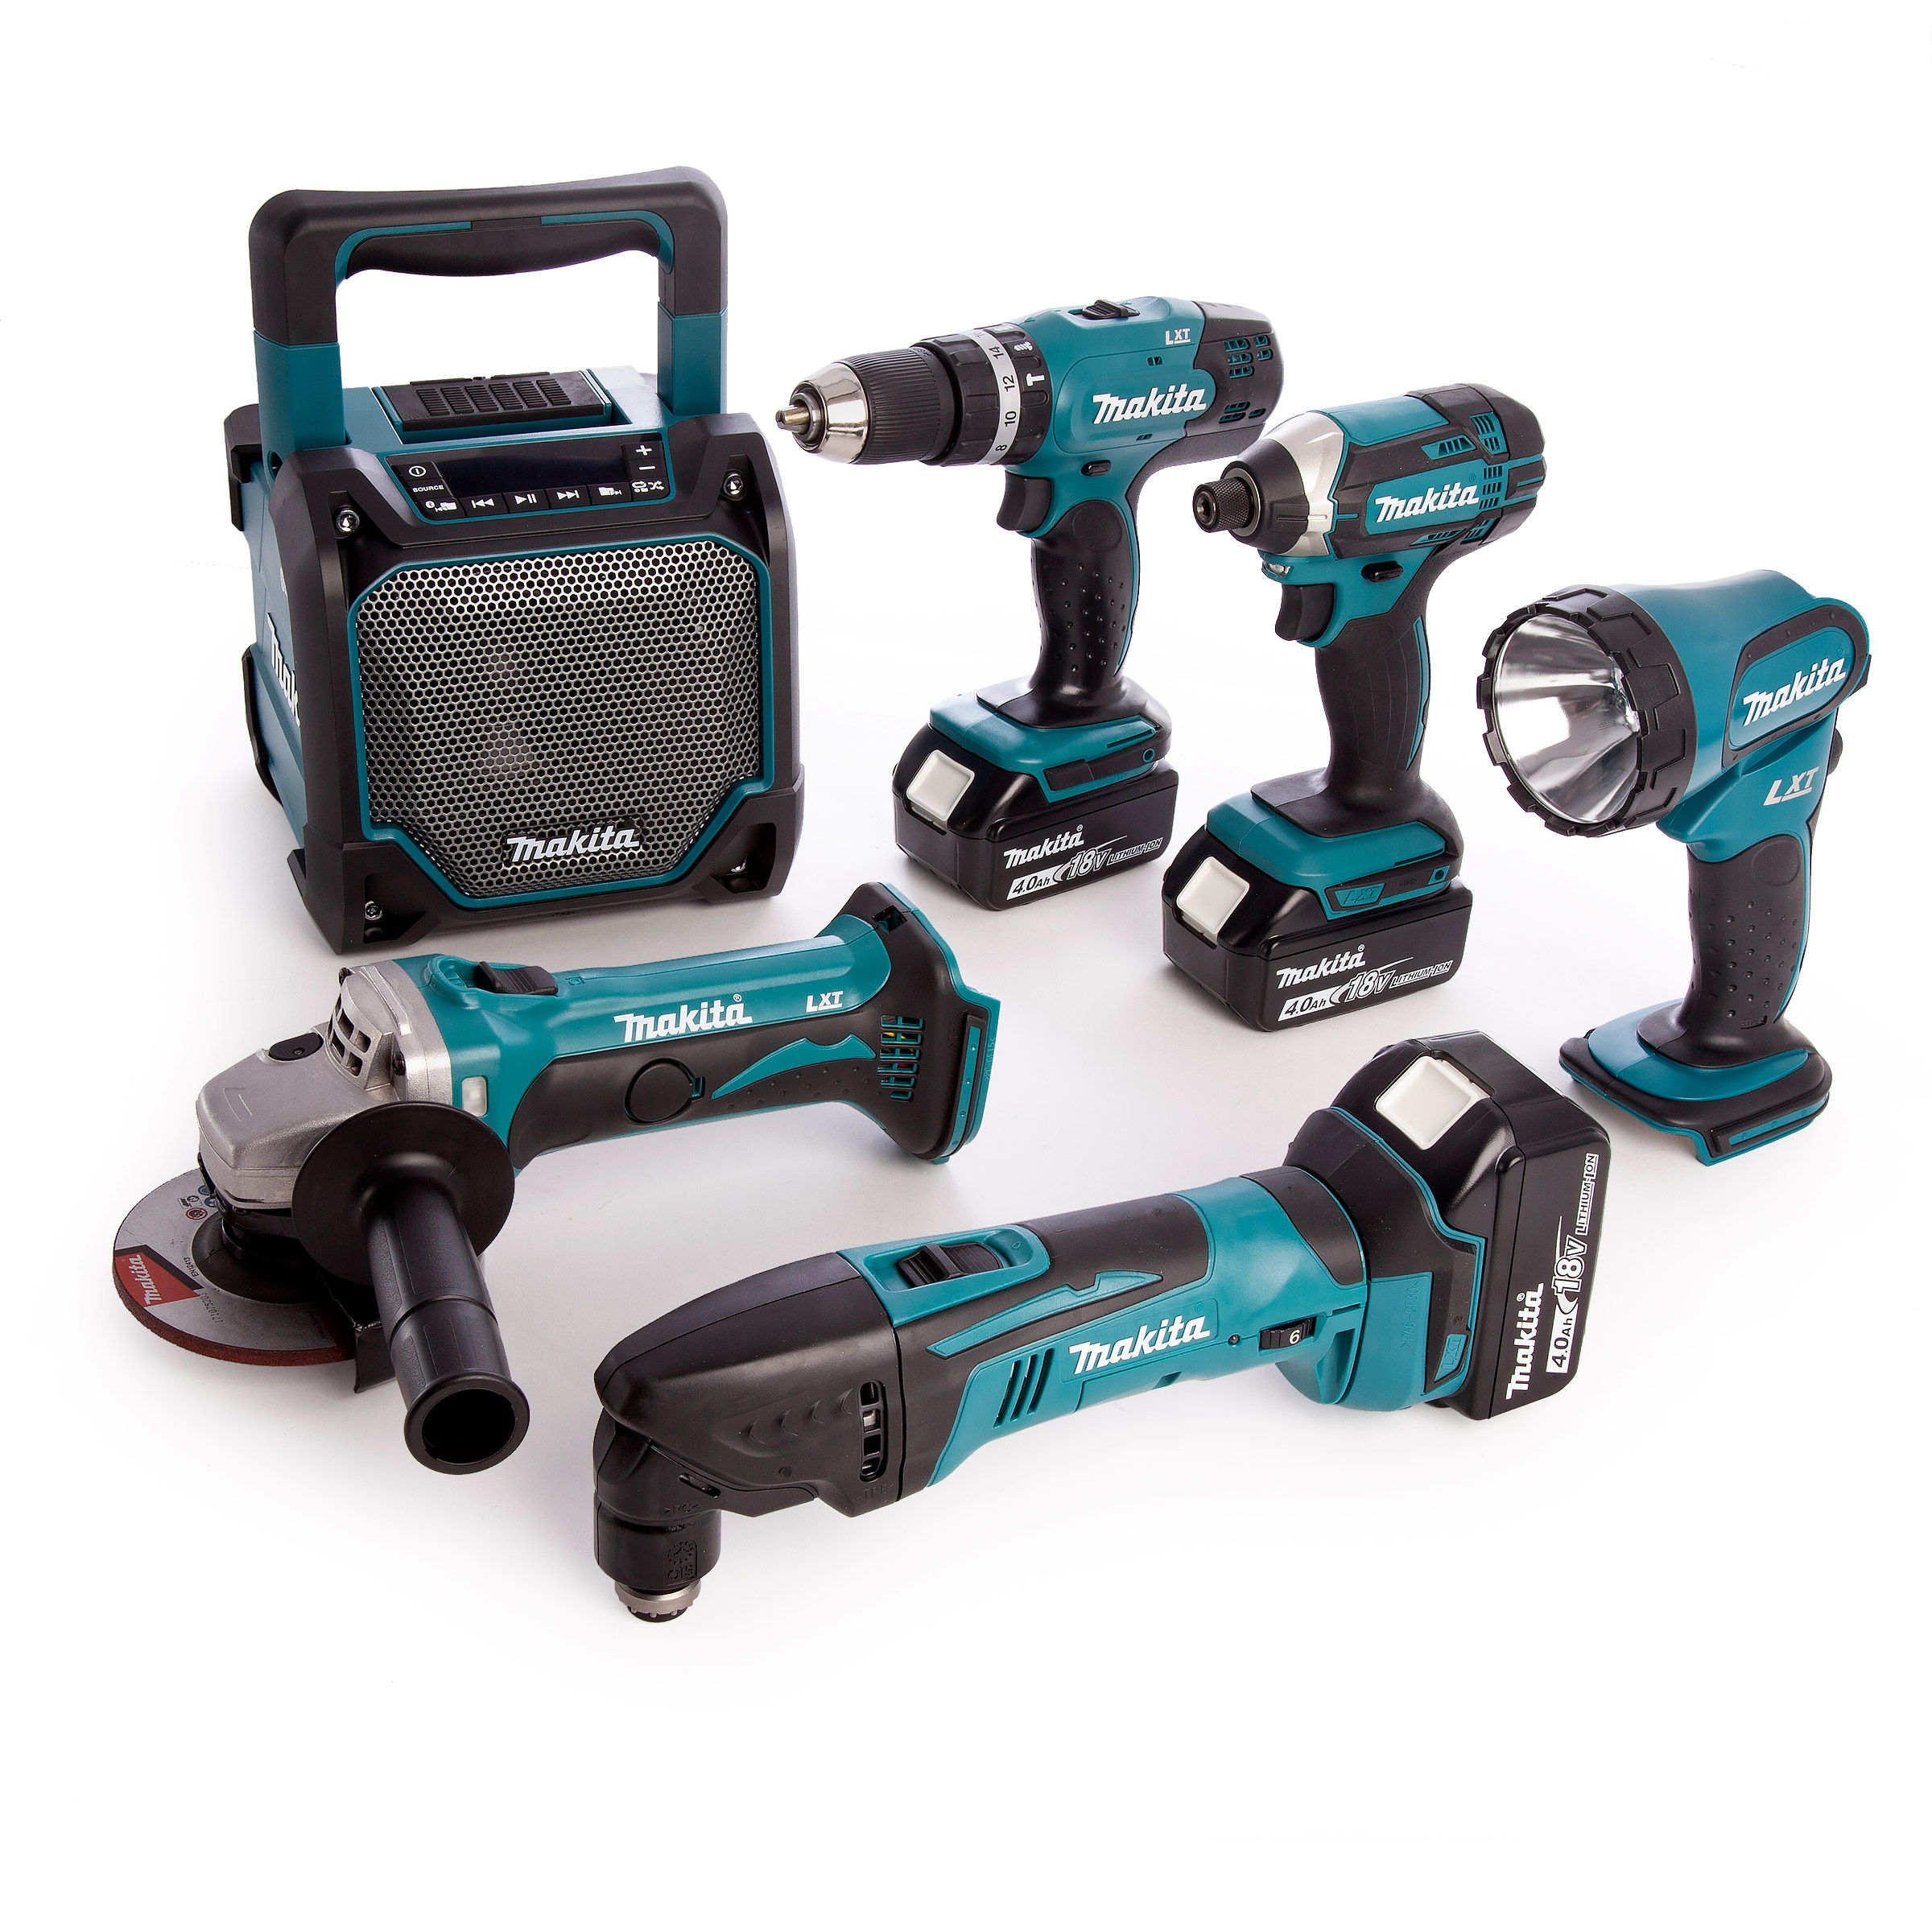 Stupendous Makita 6Kit 18V Lxt 6 Piece Combo Kit Dhp453 Combi Drill Dtd152 Impact Driver Dtm50 Multi Cutter Dga452 Angle Grinder Dmr202 Job Site Speaker Ocoug Best Dining Table And Chair Ideas Images Ocougorg